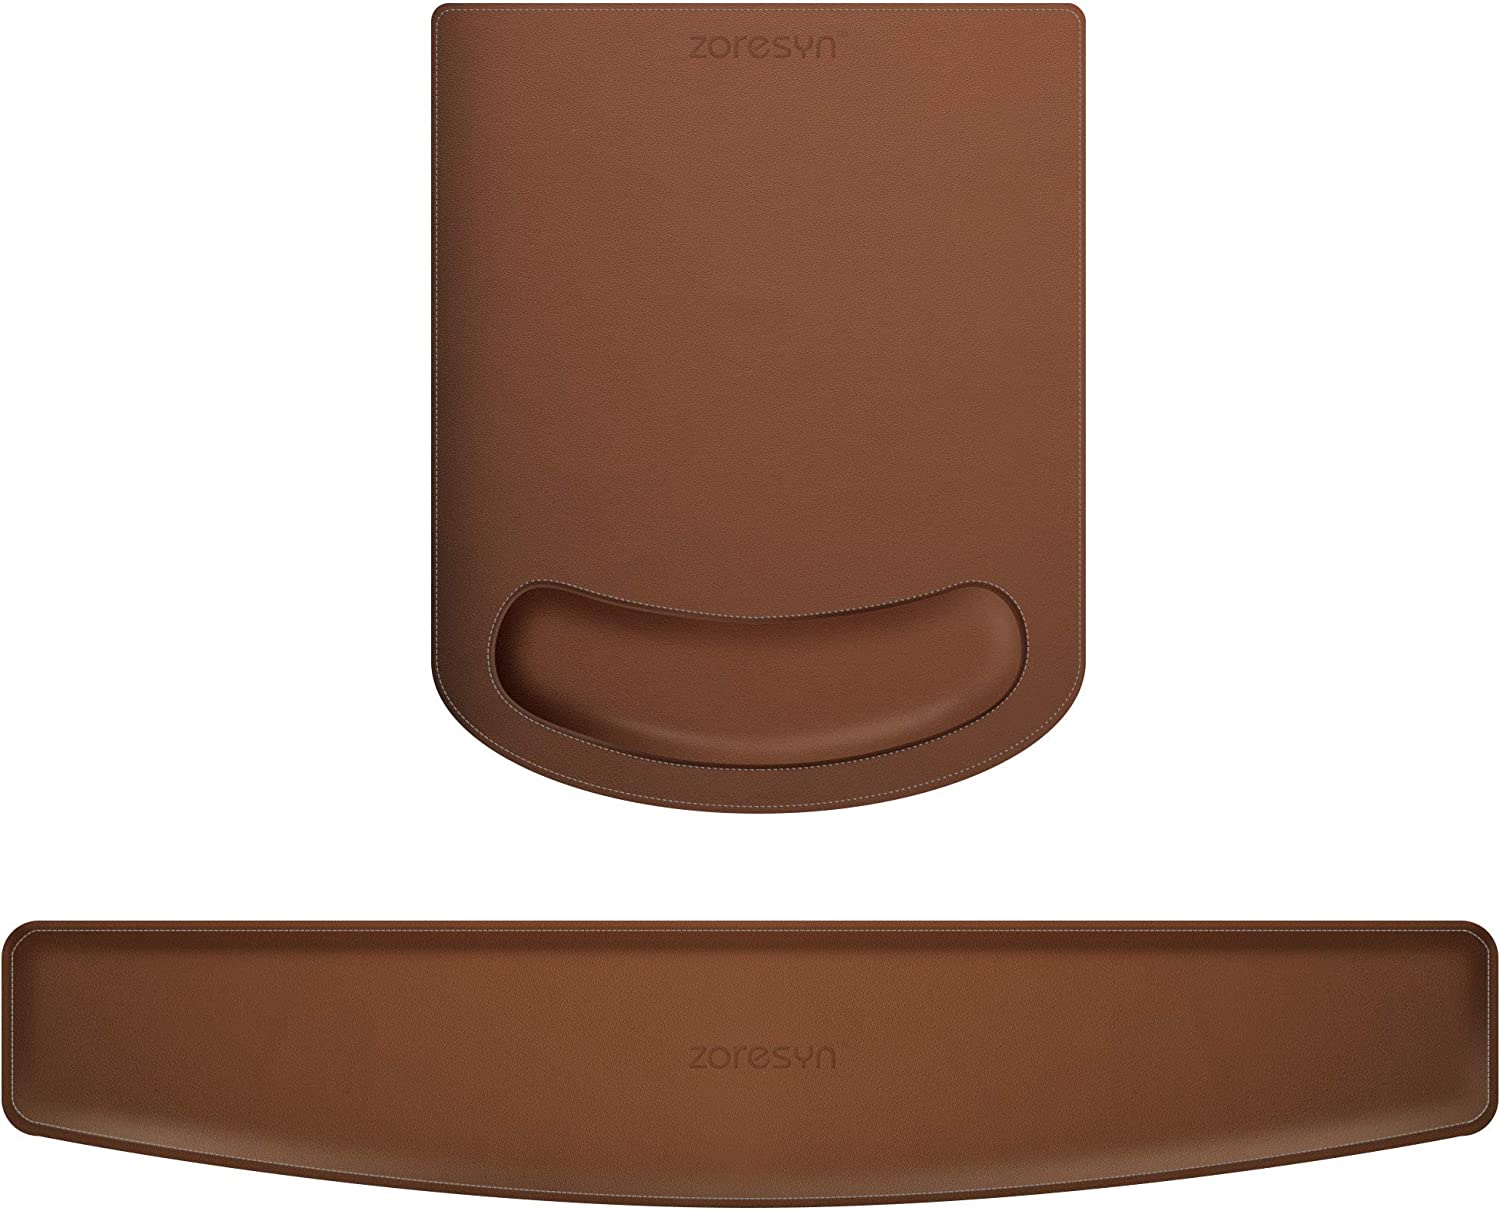 PU Leather Mouse Pads Wrist Rest Support and Keyboard Wrist Rest Pad Set for Laptop Computer Mac,Ergonomic Memory Foam,Non-Slip Base Mouse pad,Easy Typing and Relieve Wrist Pain(Brown)